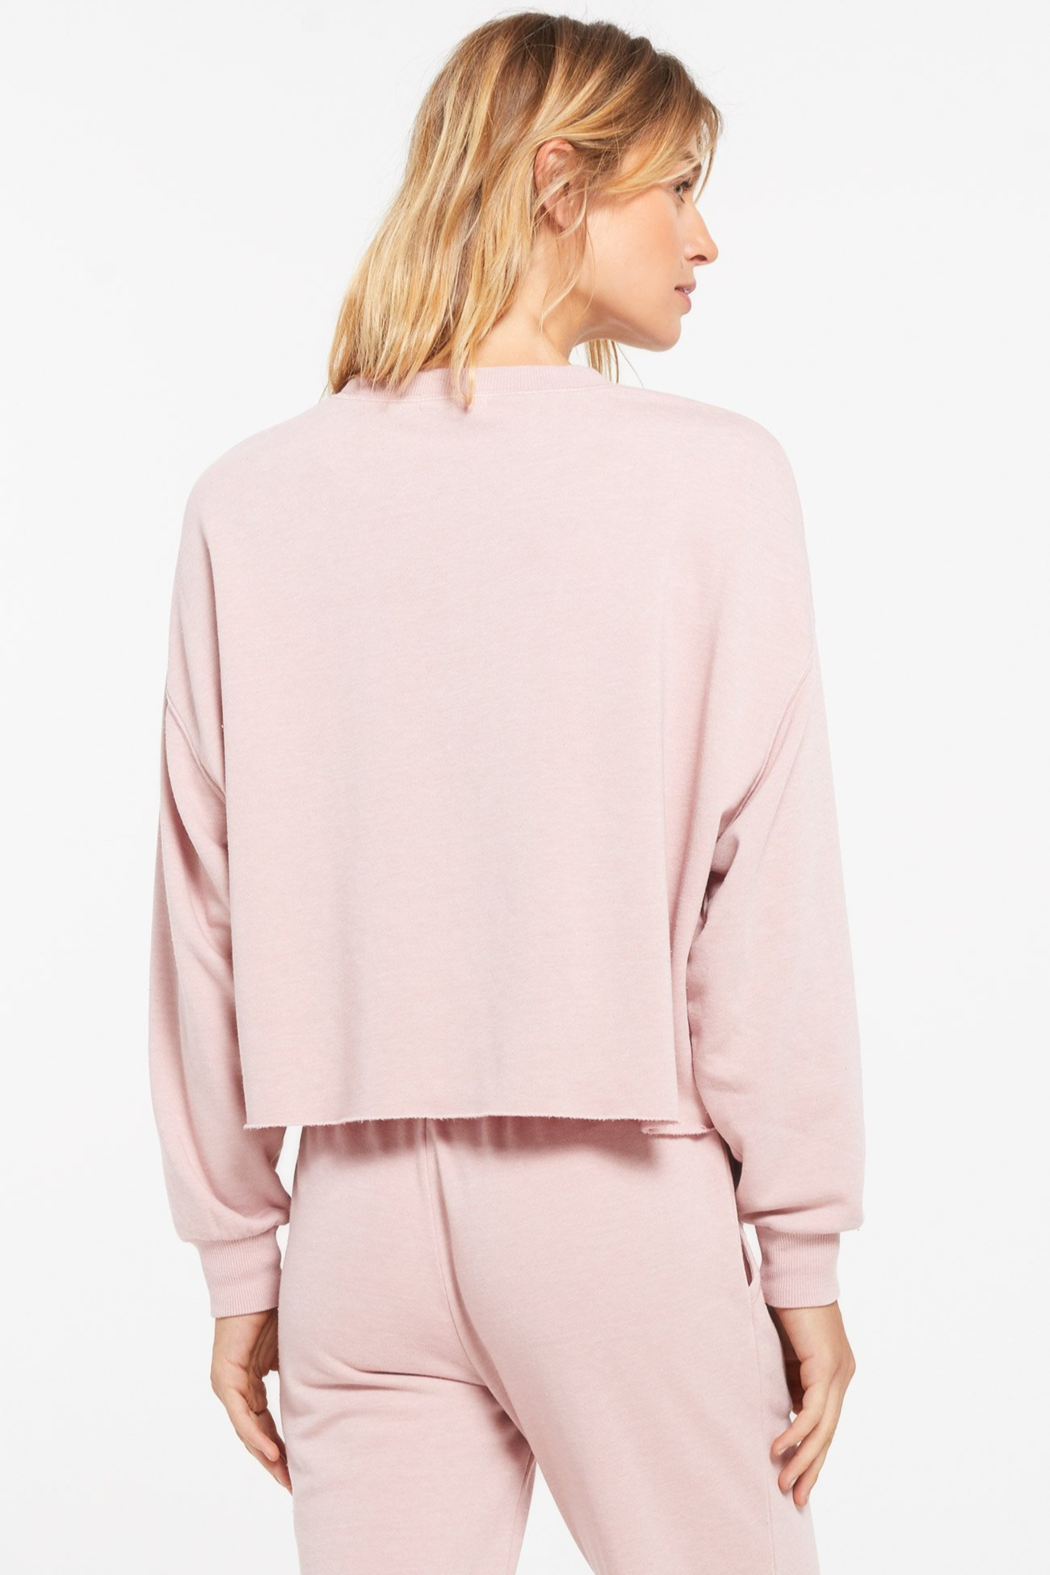 z supply Izzy Pullover Sweater - Side Cropped Image